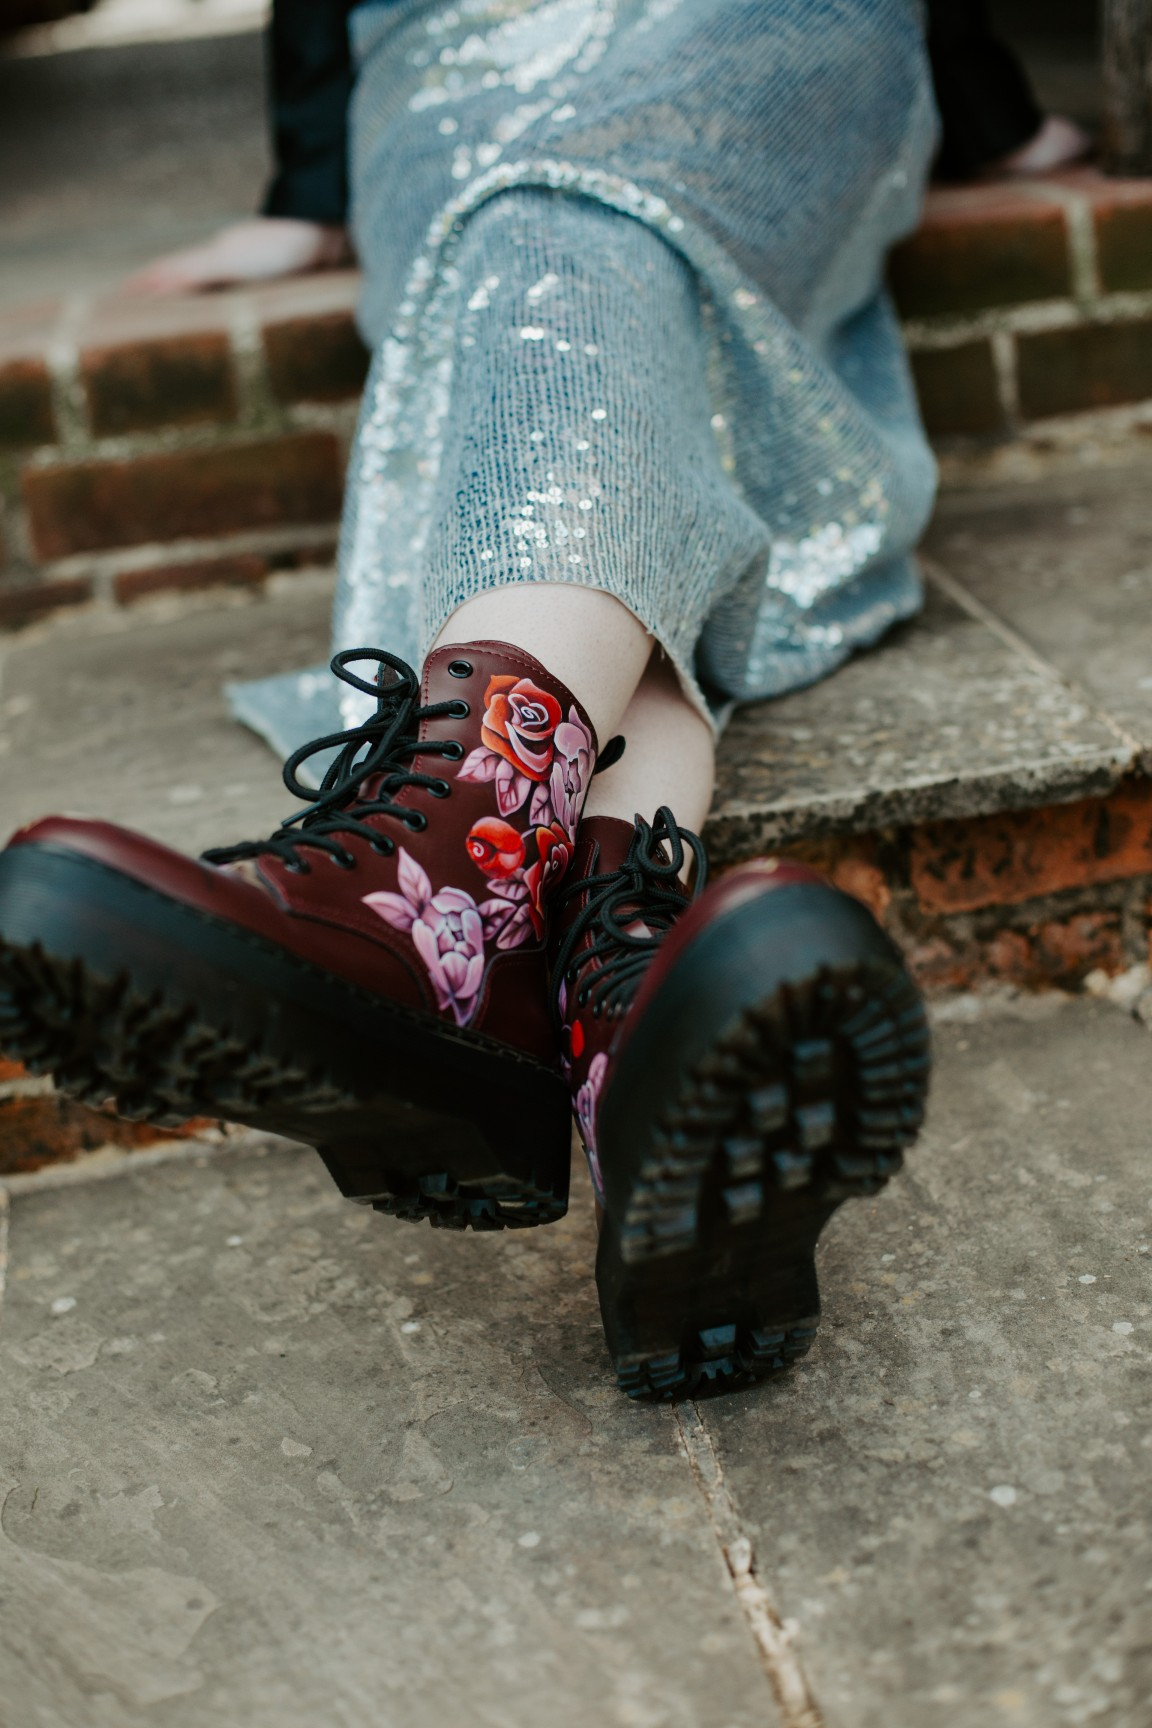 rock and roll wedding - edgy wedding inspiration - hand painted doc martens - wedding hand painted dr martens - unique wedding shoes